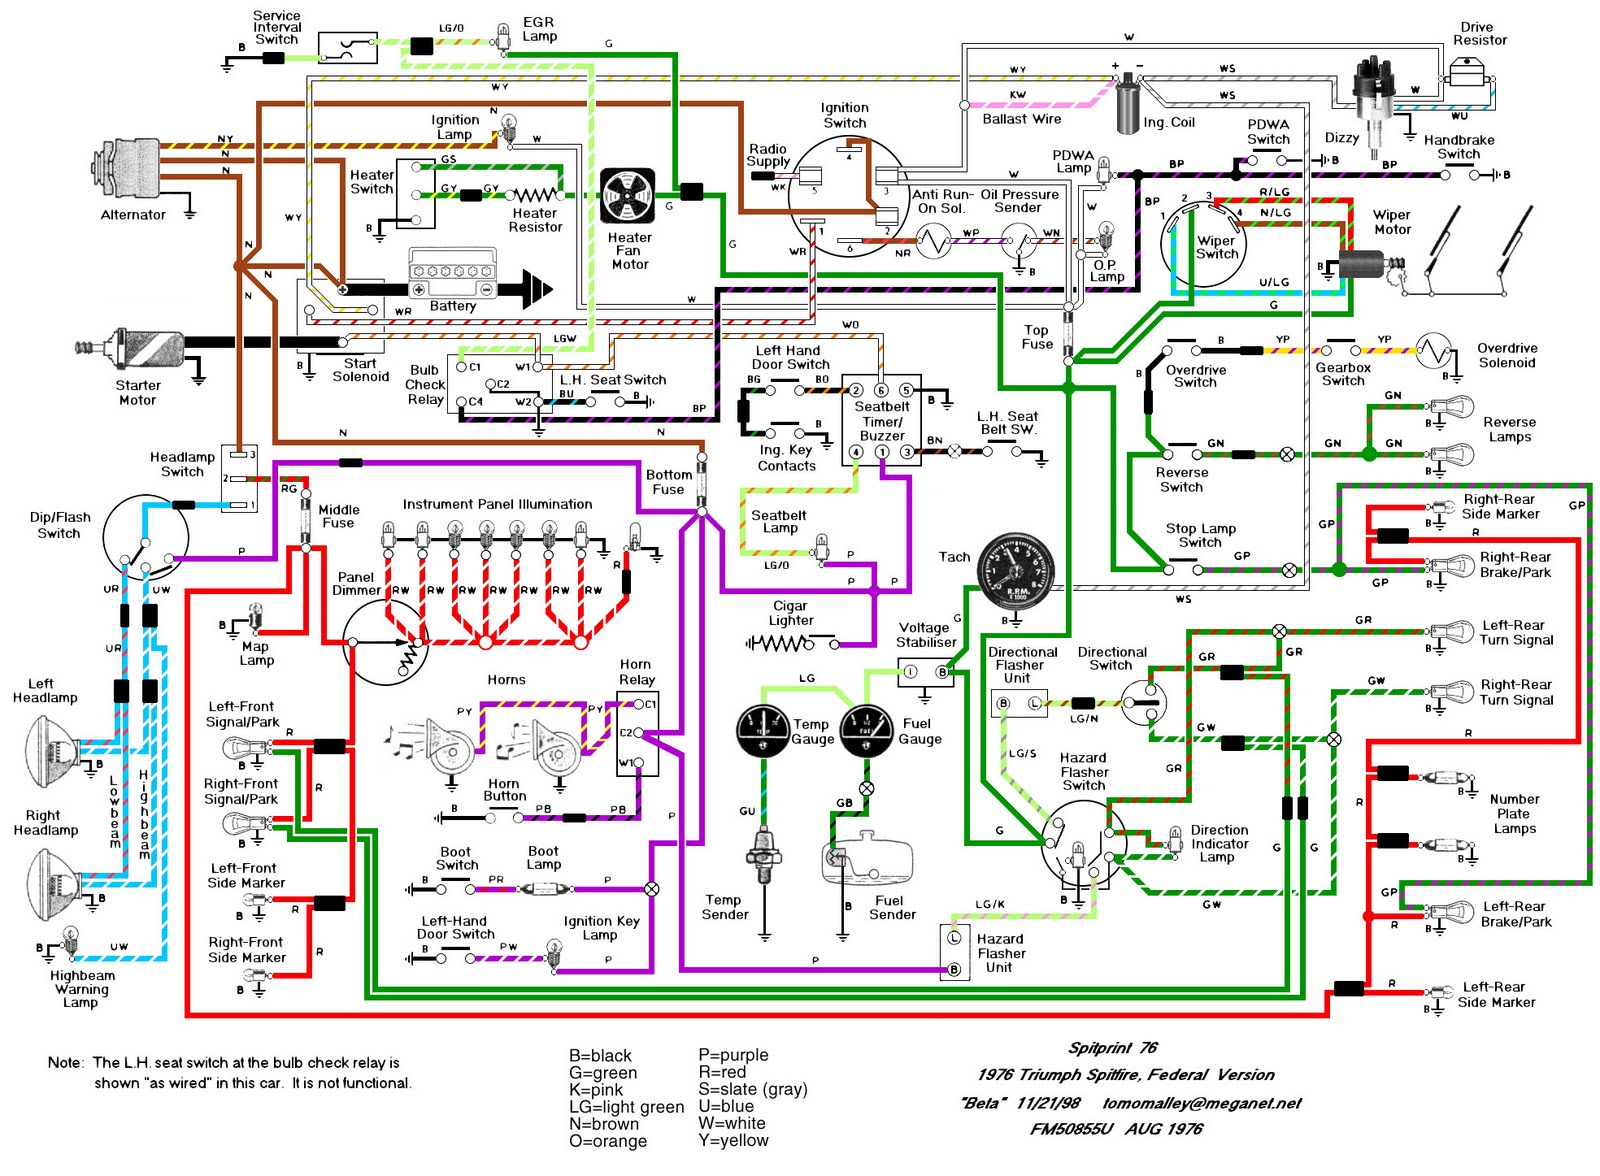 crm-application-architecture-examples-and-templates 3 Pin Relay Wiring Diagram Horn